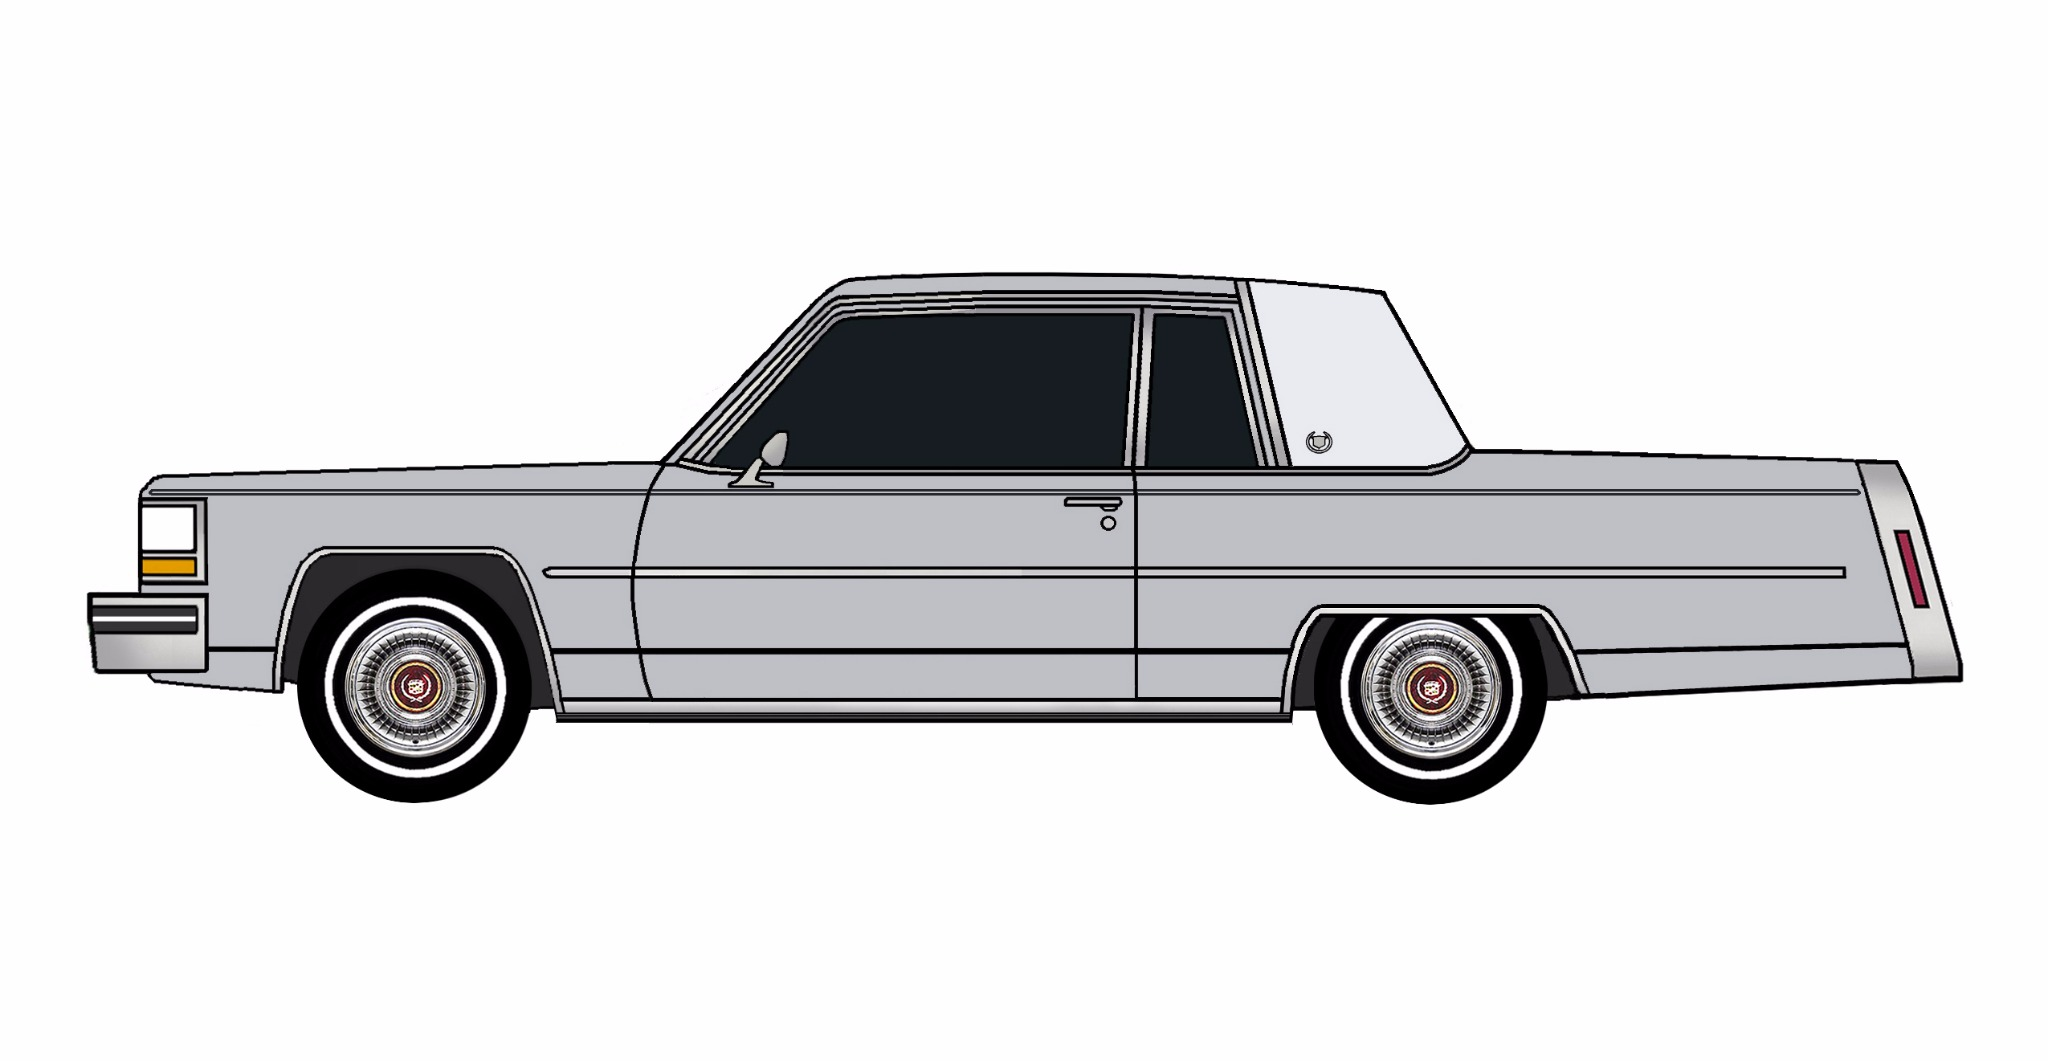 1981 Cadillac Coupe Deville LILAC GREY